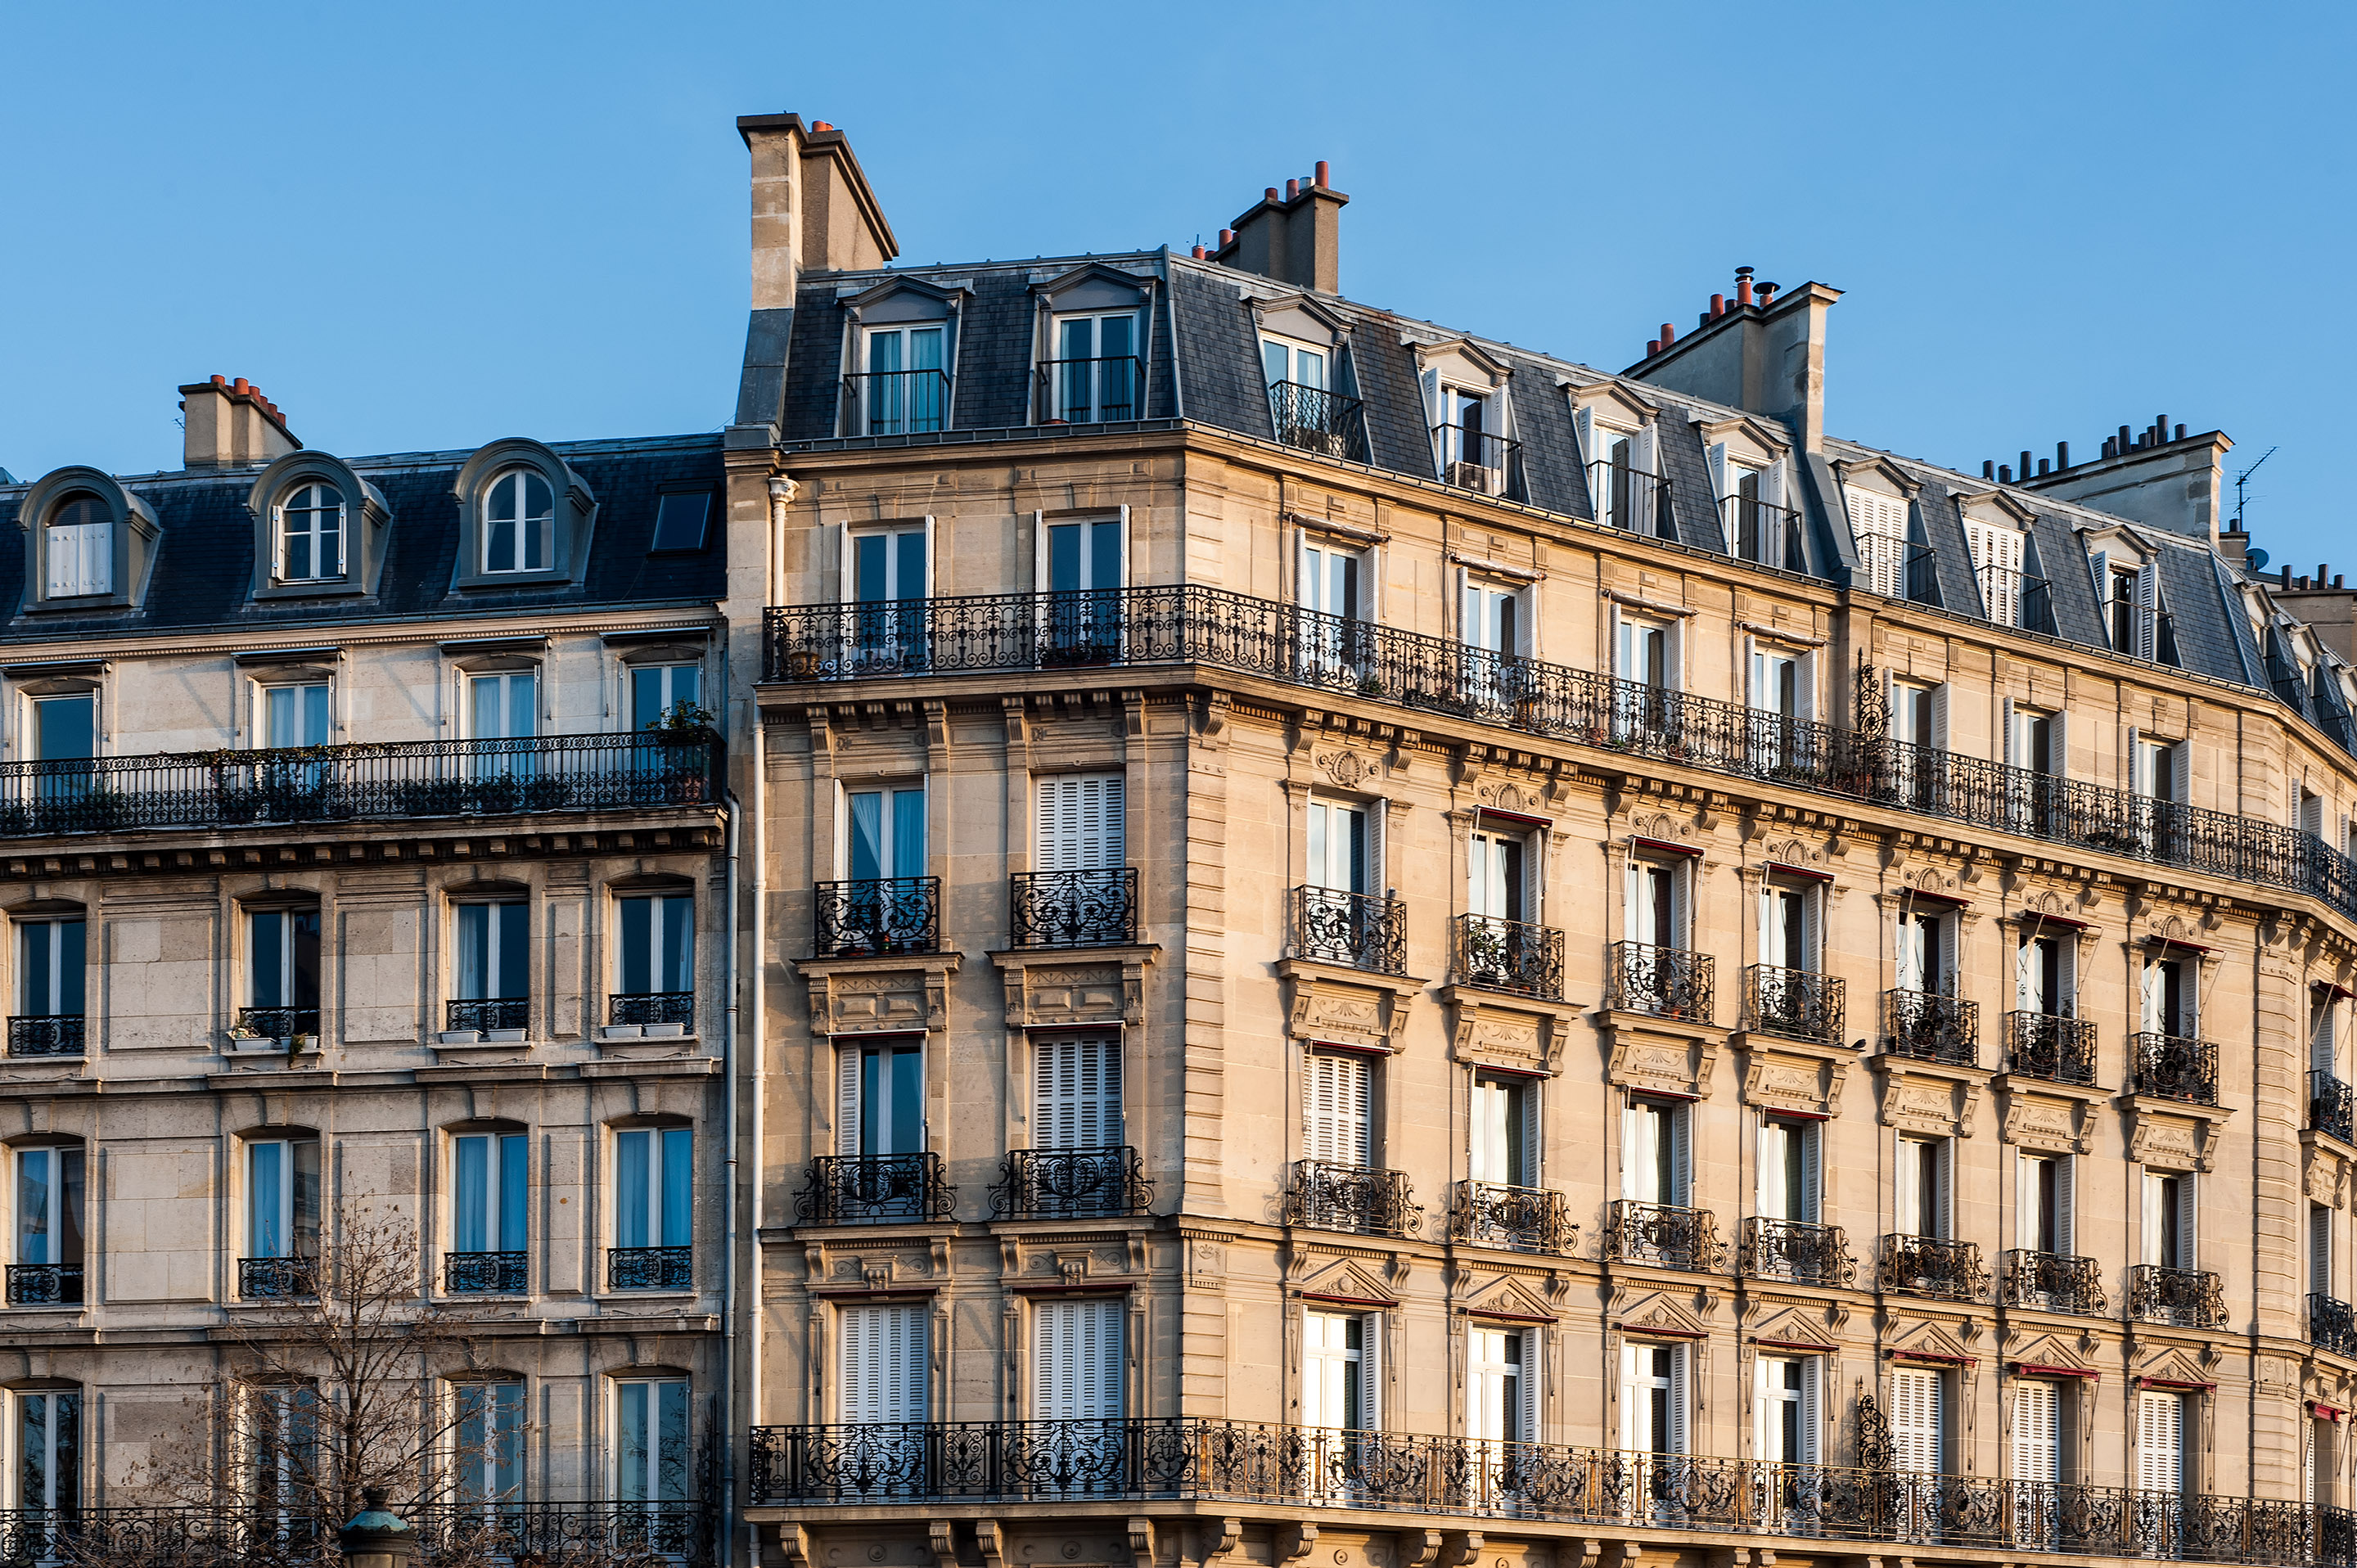 Apartment Building in Paris - JuMoSc